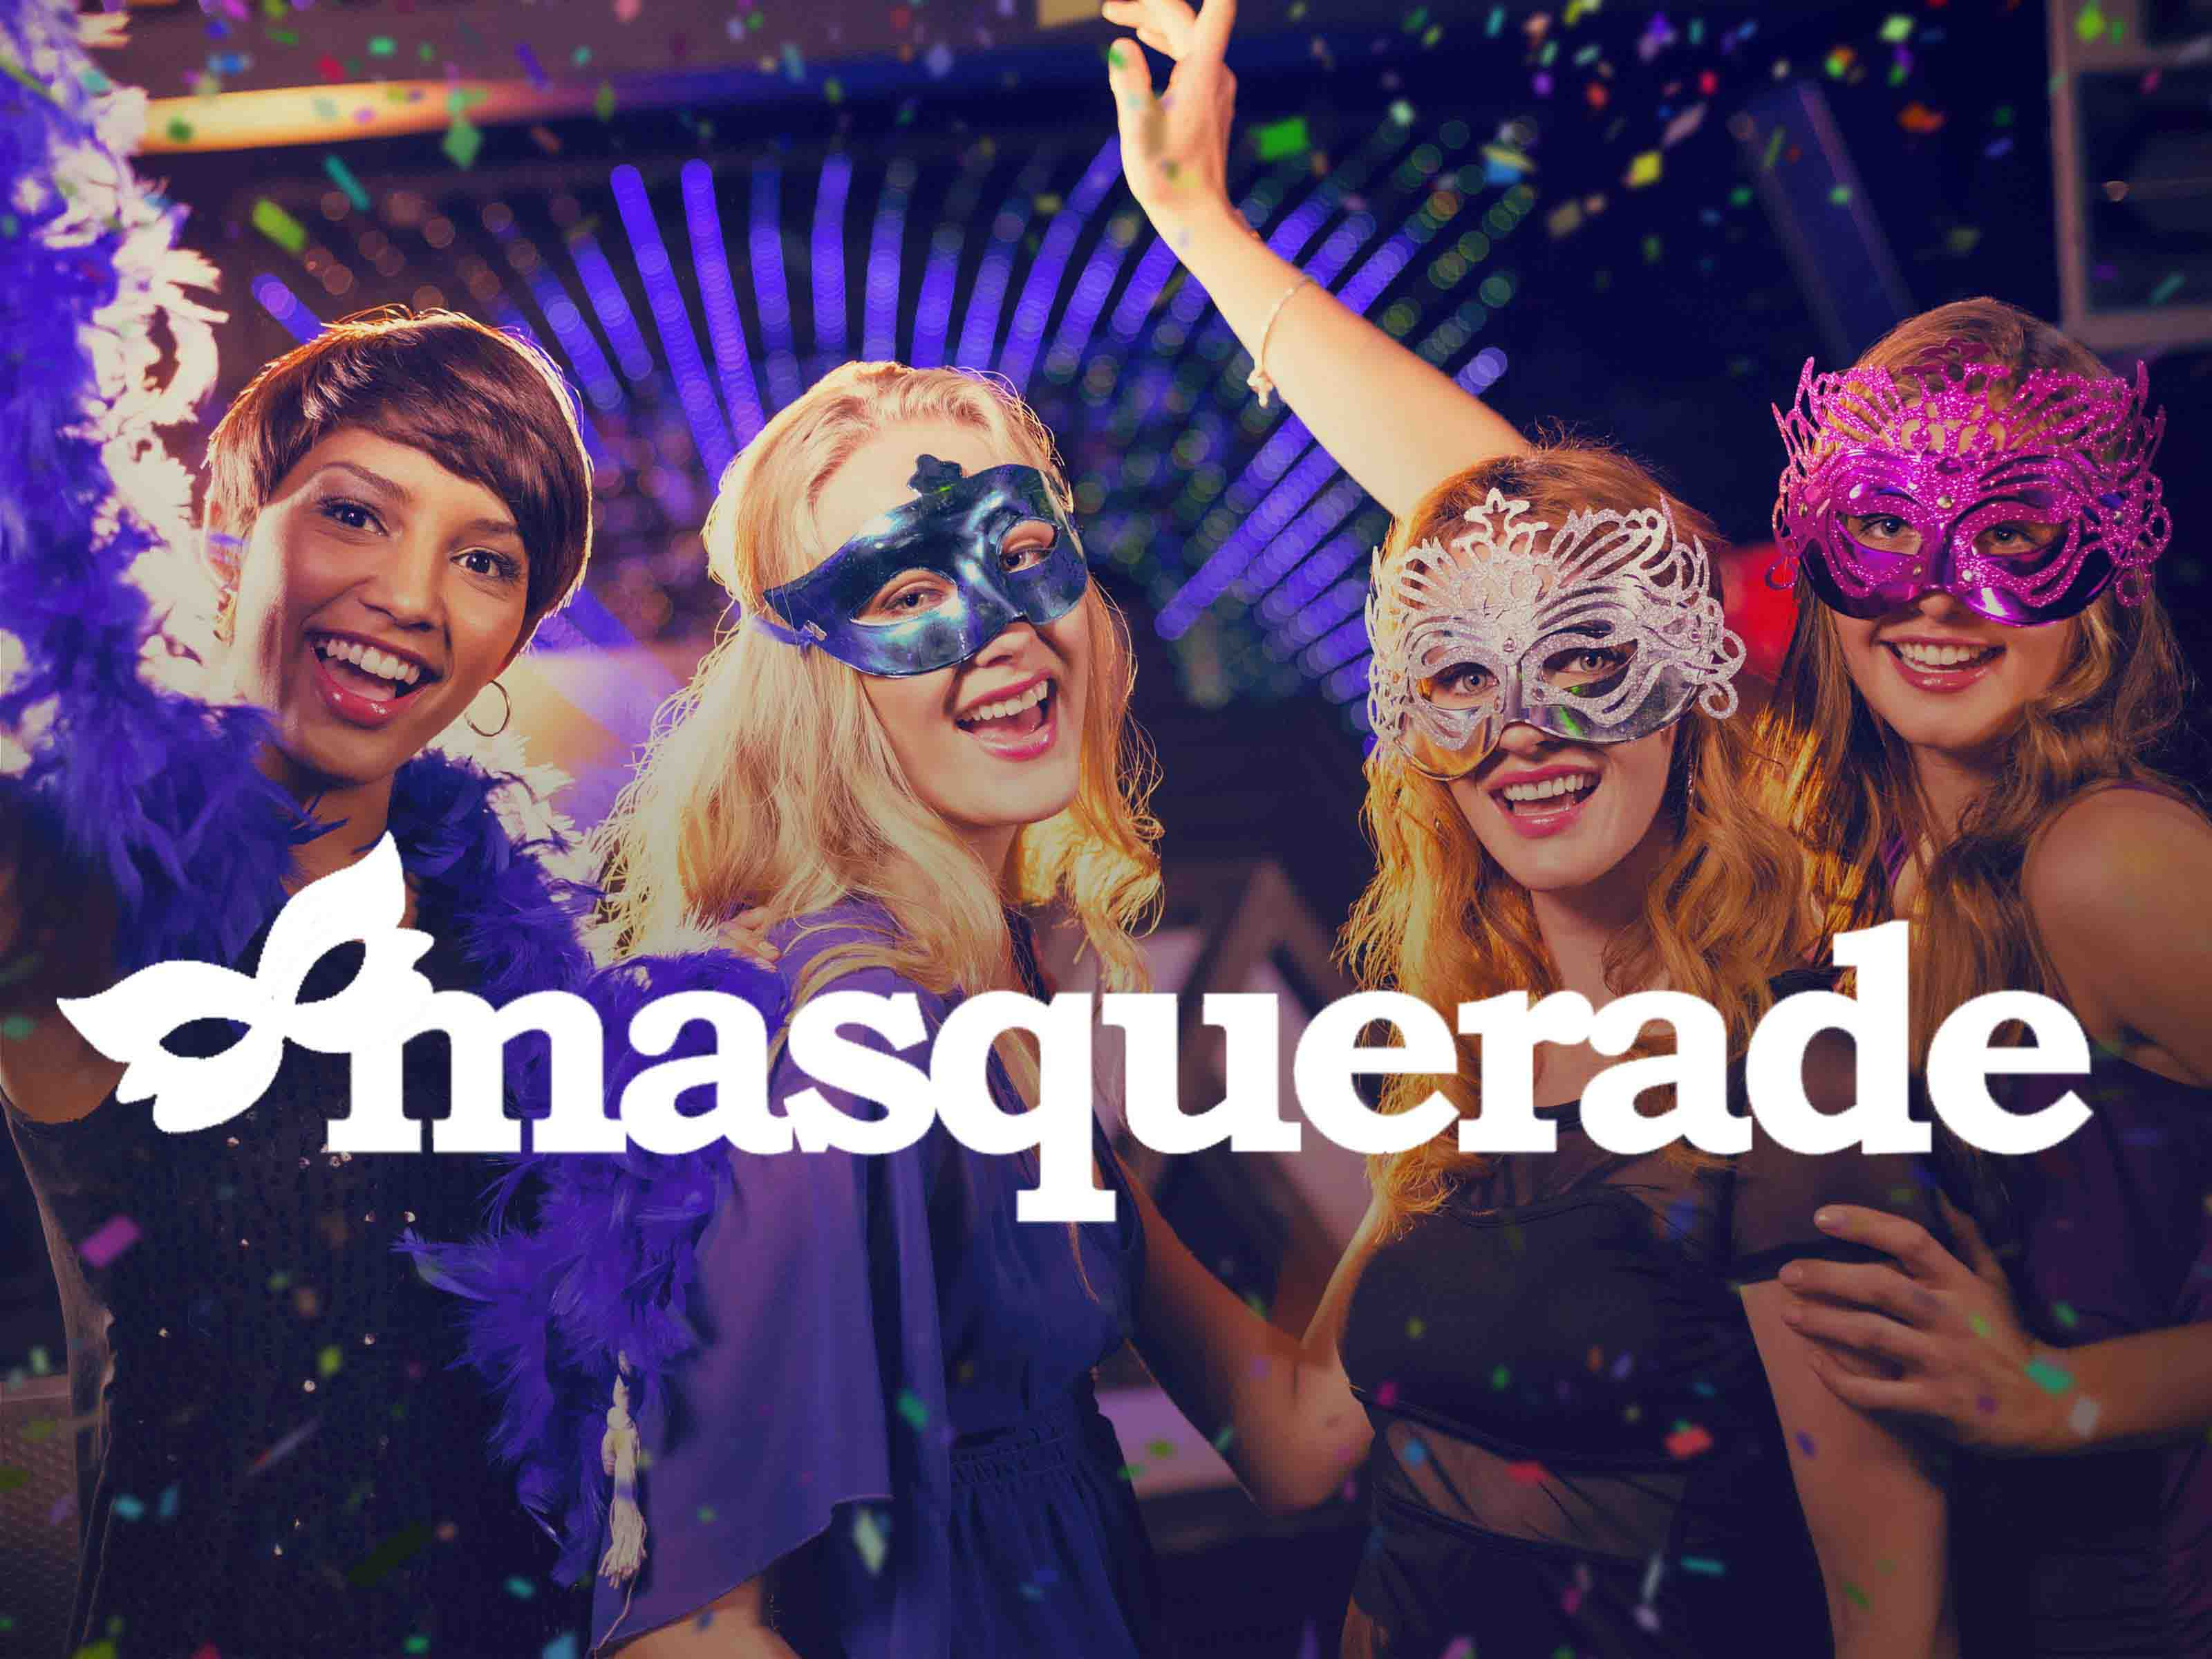 Hen Party Themes - Masquerade